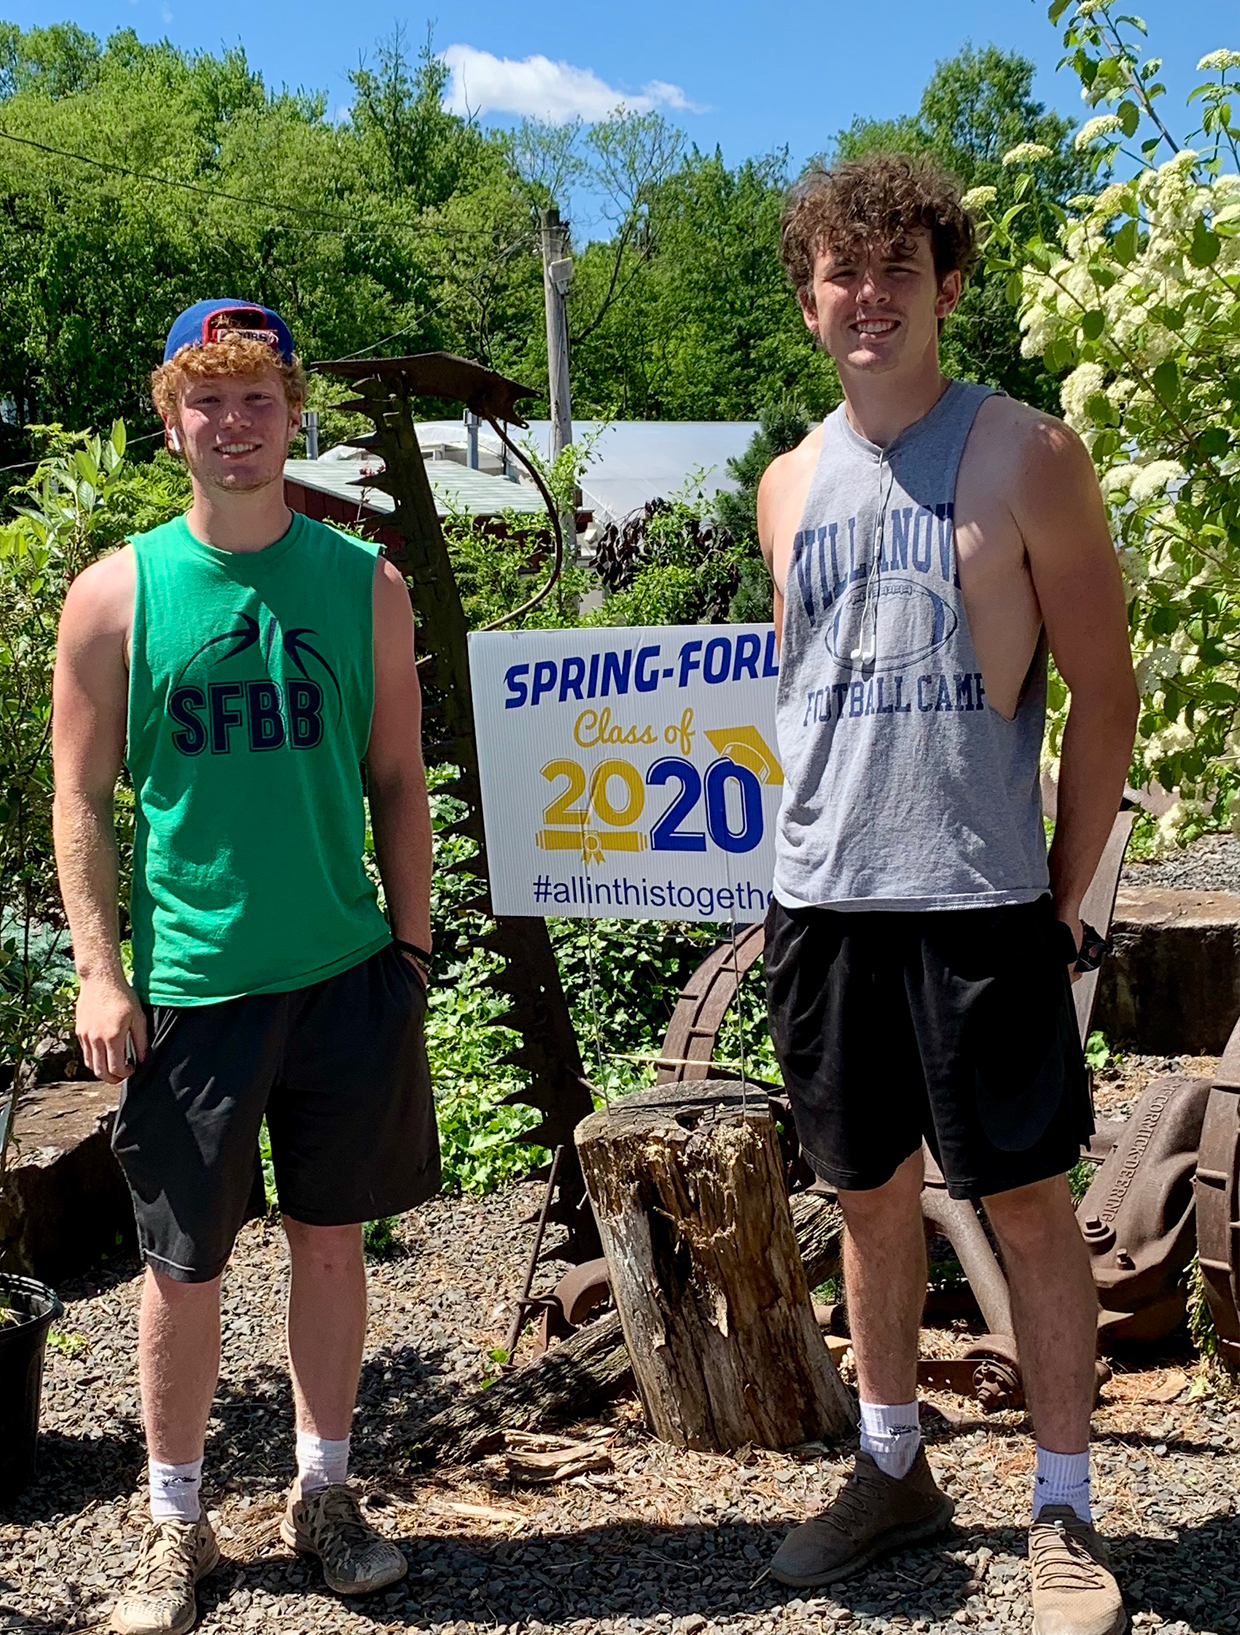 Zach and Ryan, Class of 2020